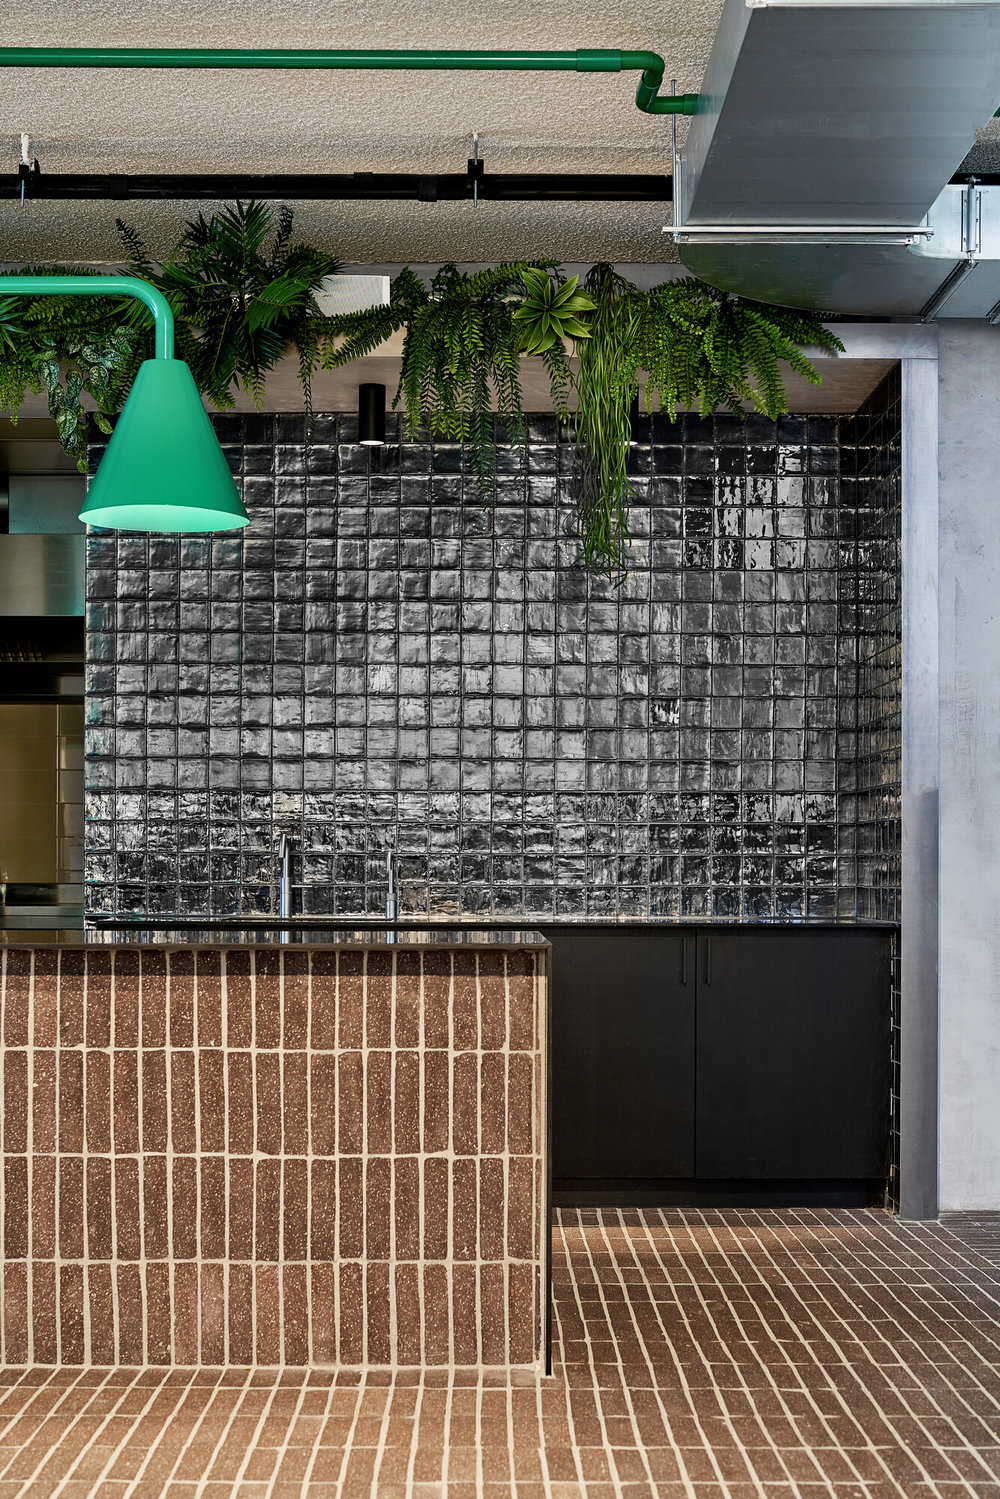 Sustainable pantry of circular brick slips